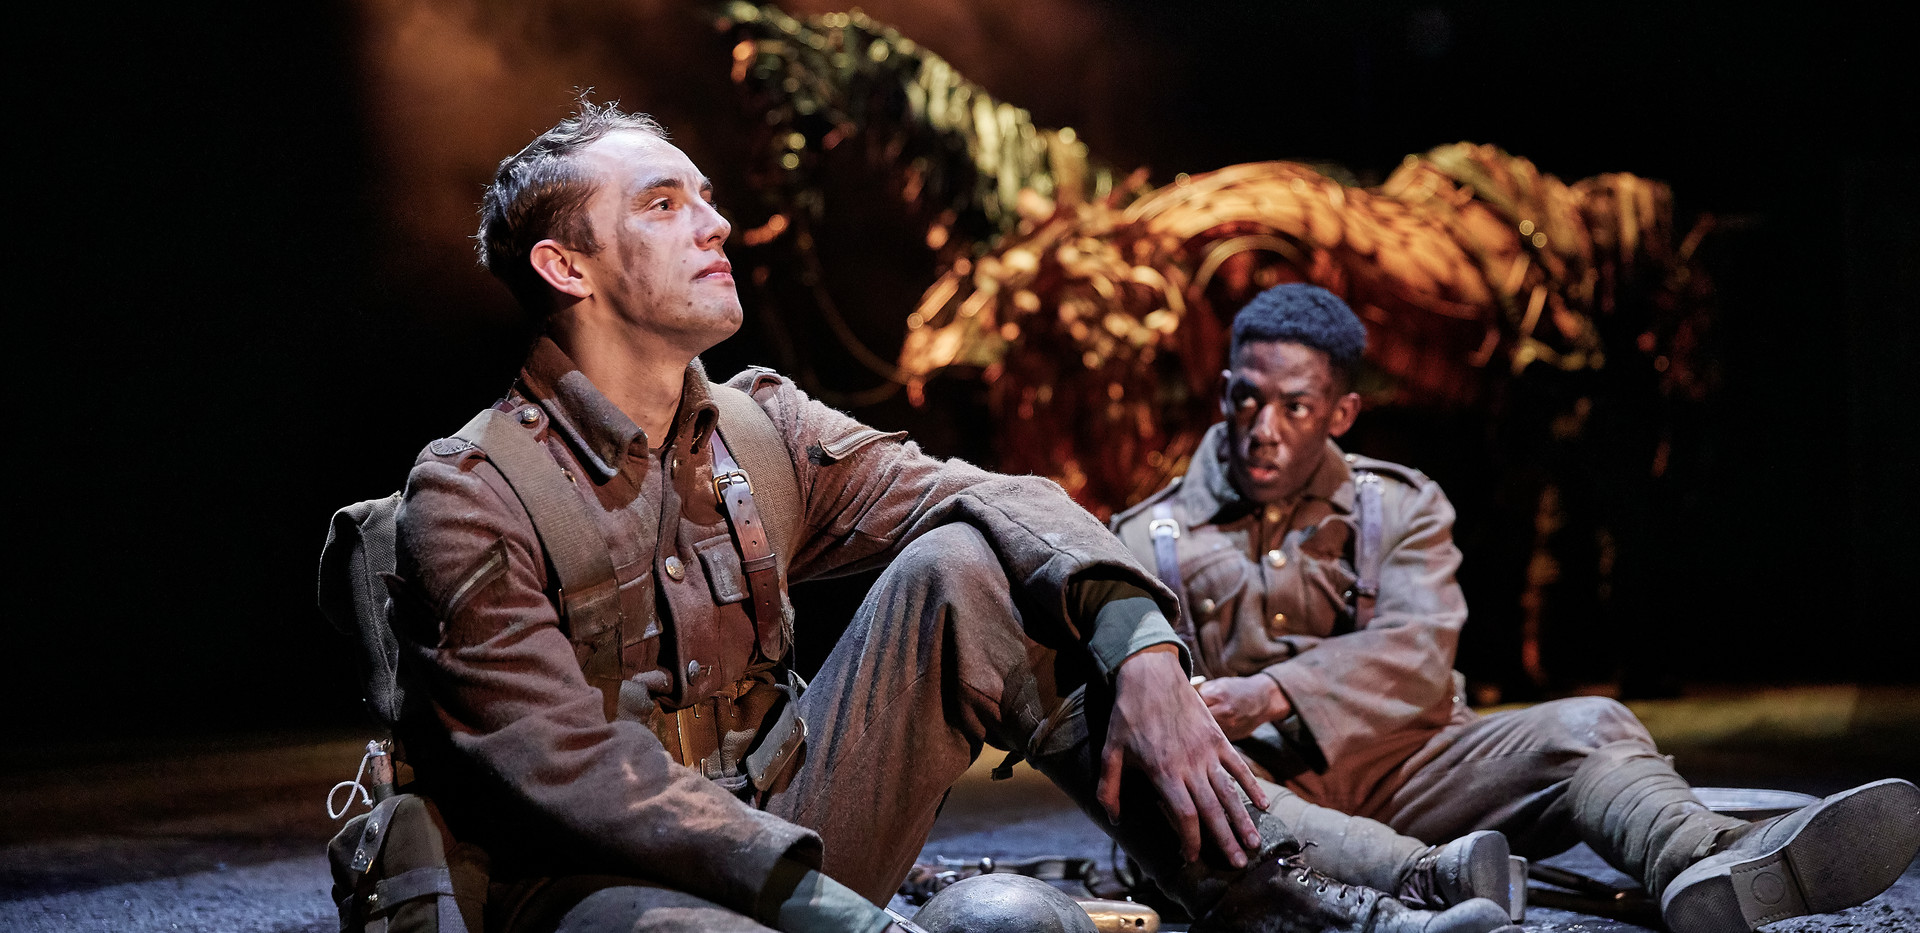 Scott Miller, Khalid Daley. War Horse 20